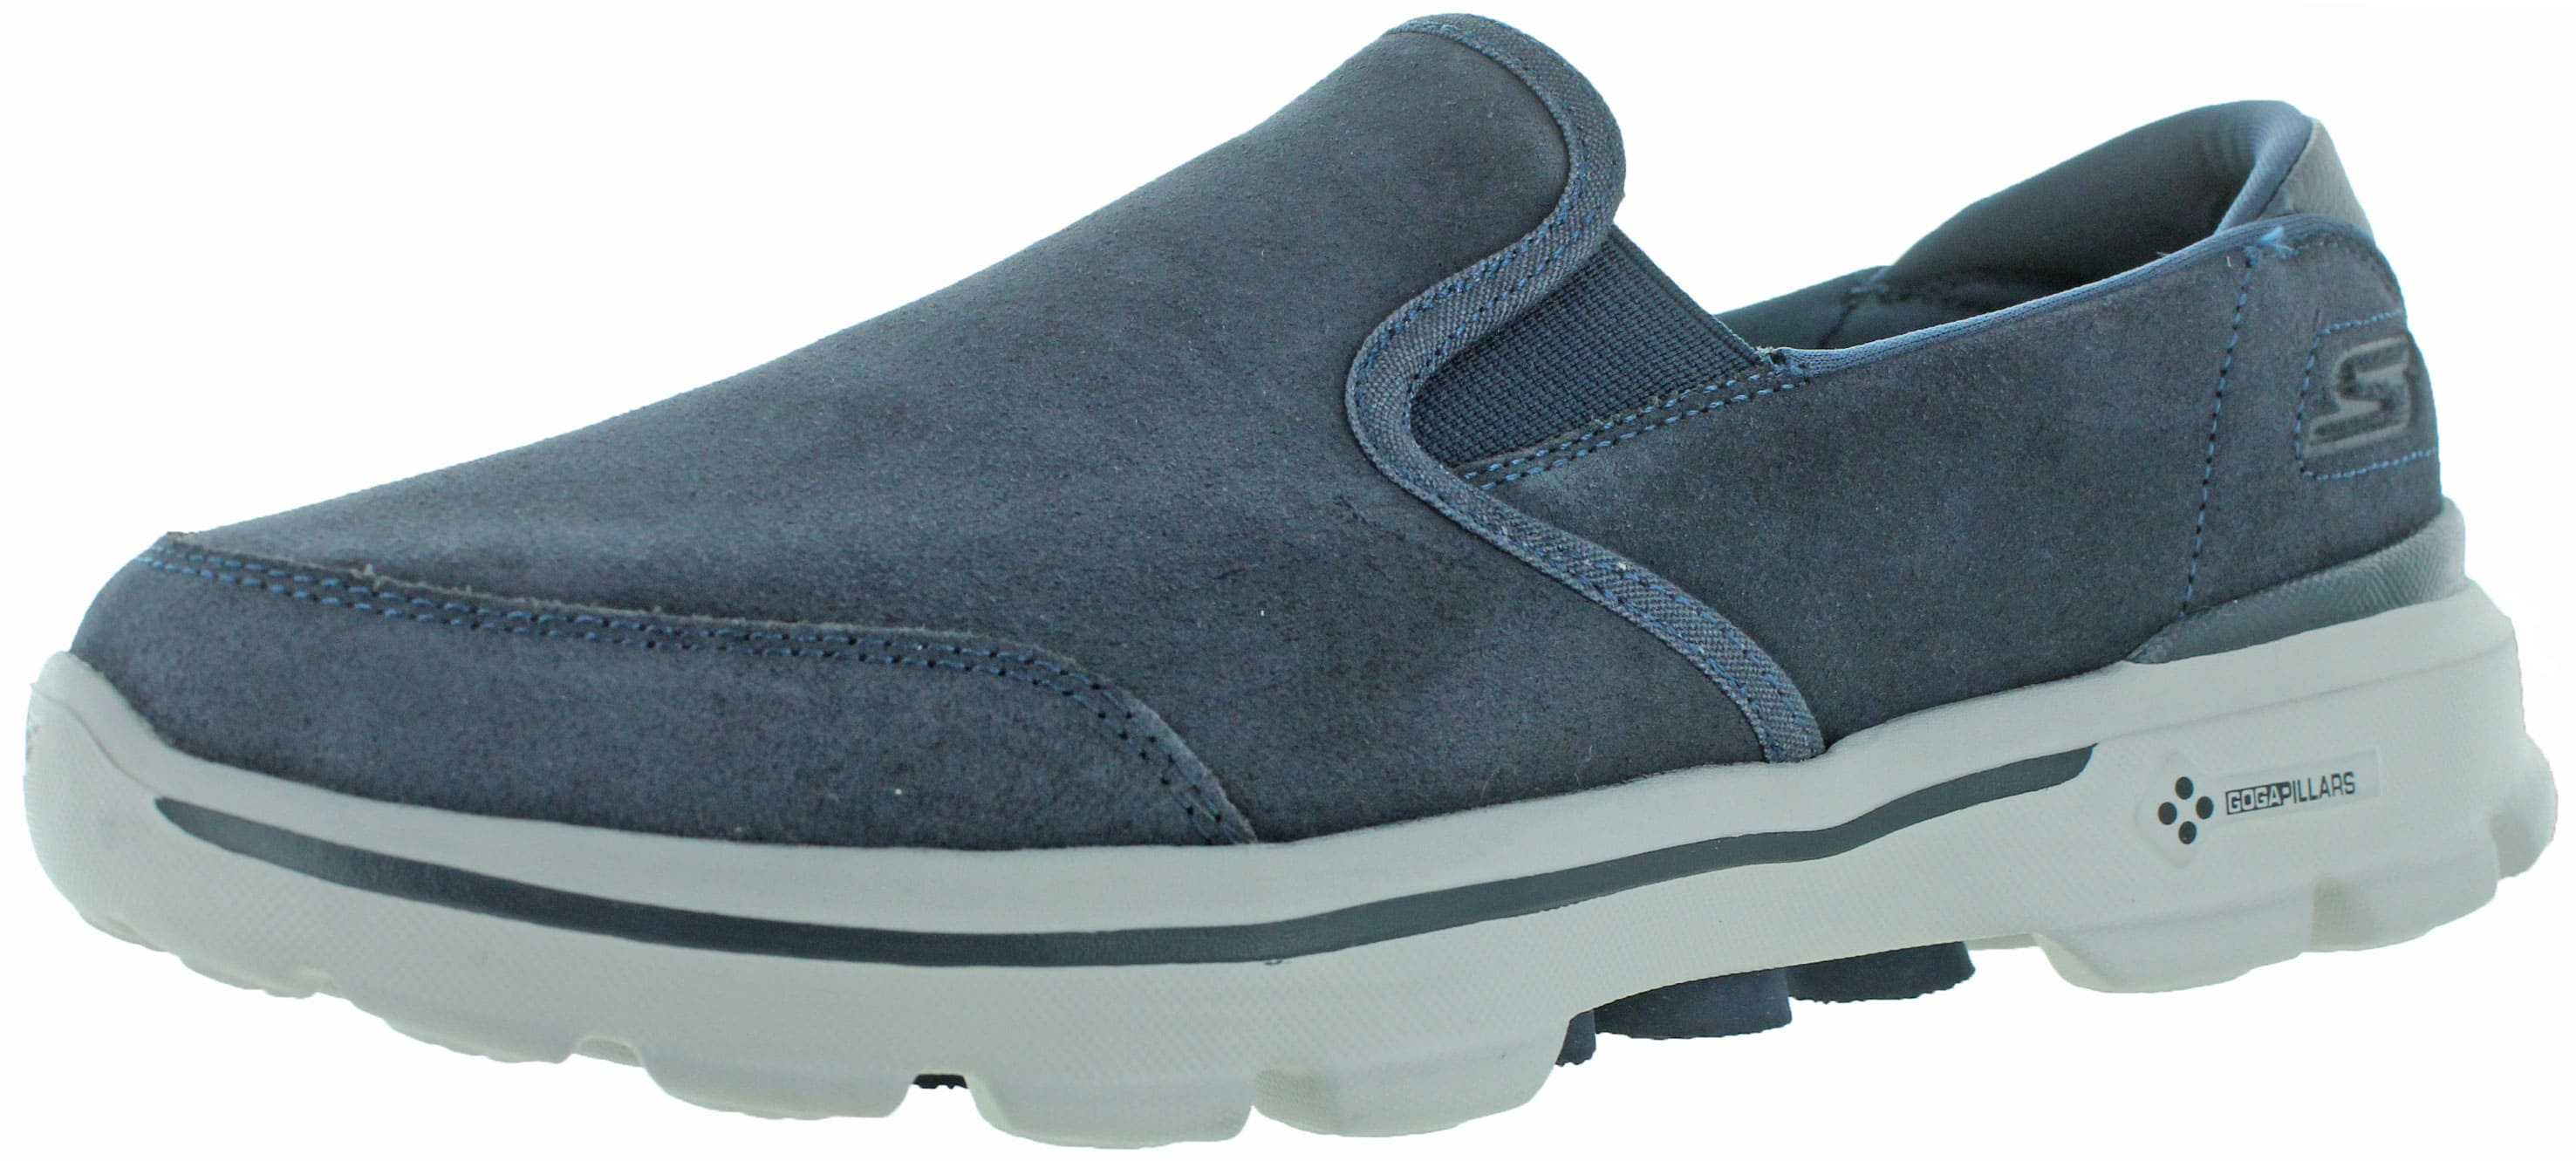 Skechers Go Walk 3 Men's Leather Slip-On Casuals Shoes $ 29.99 on ebay $29.99